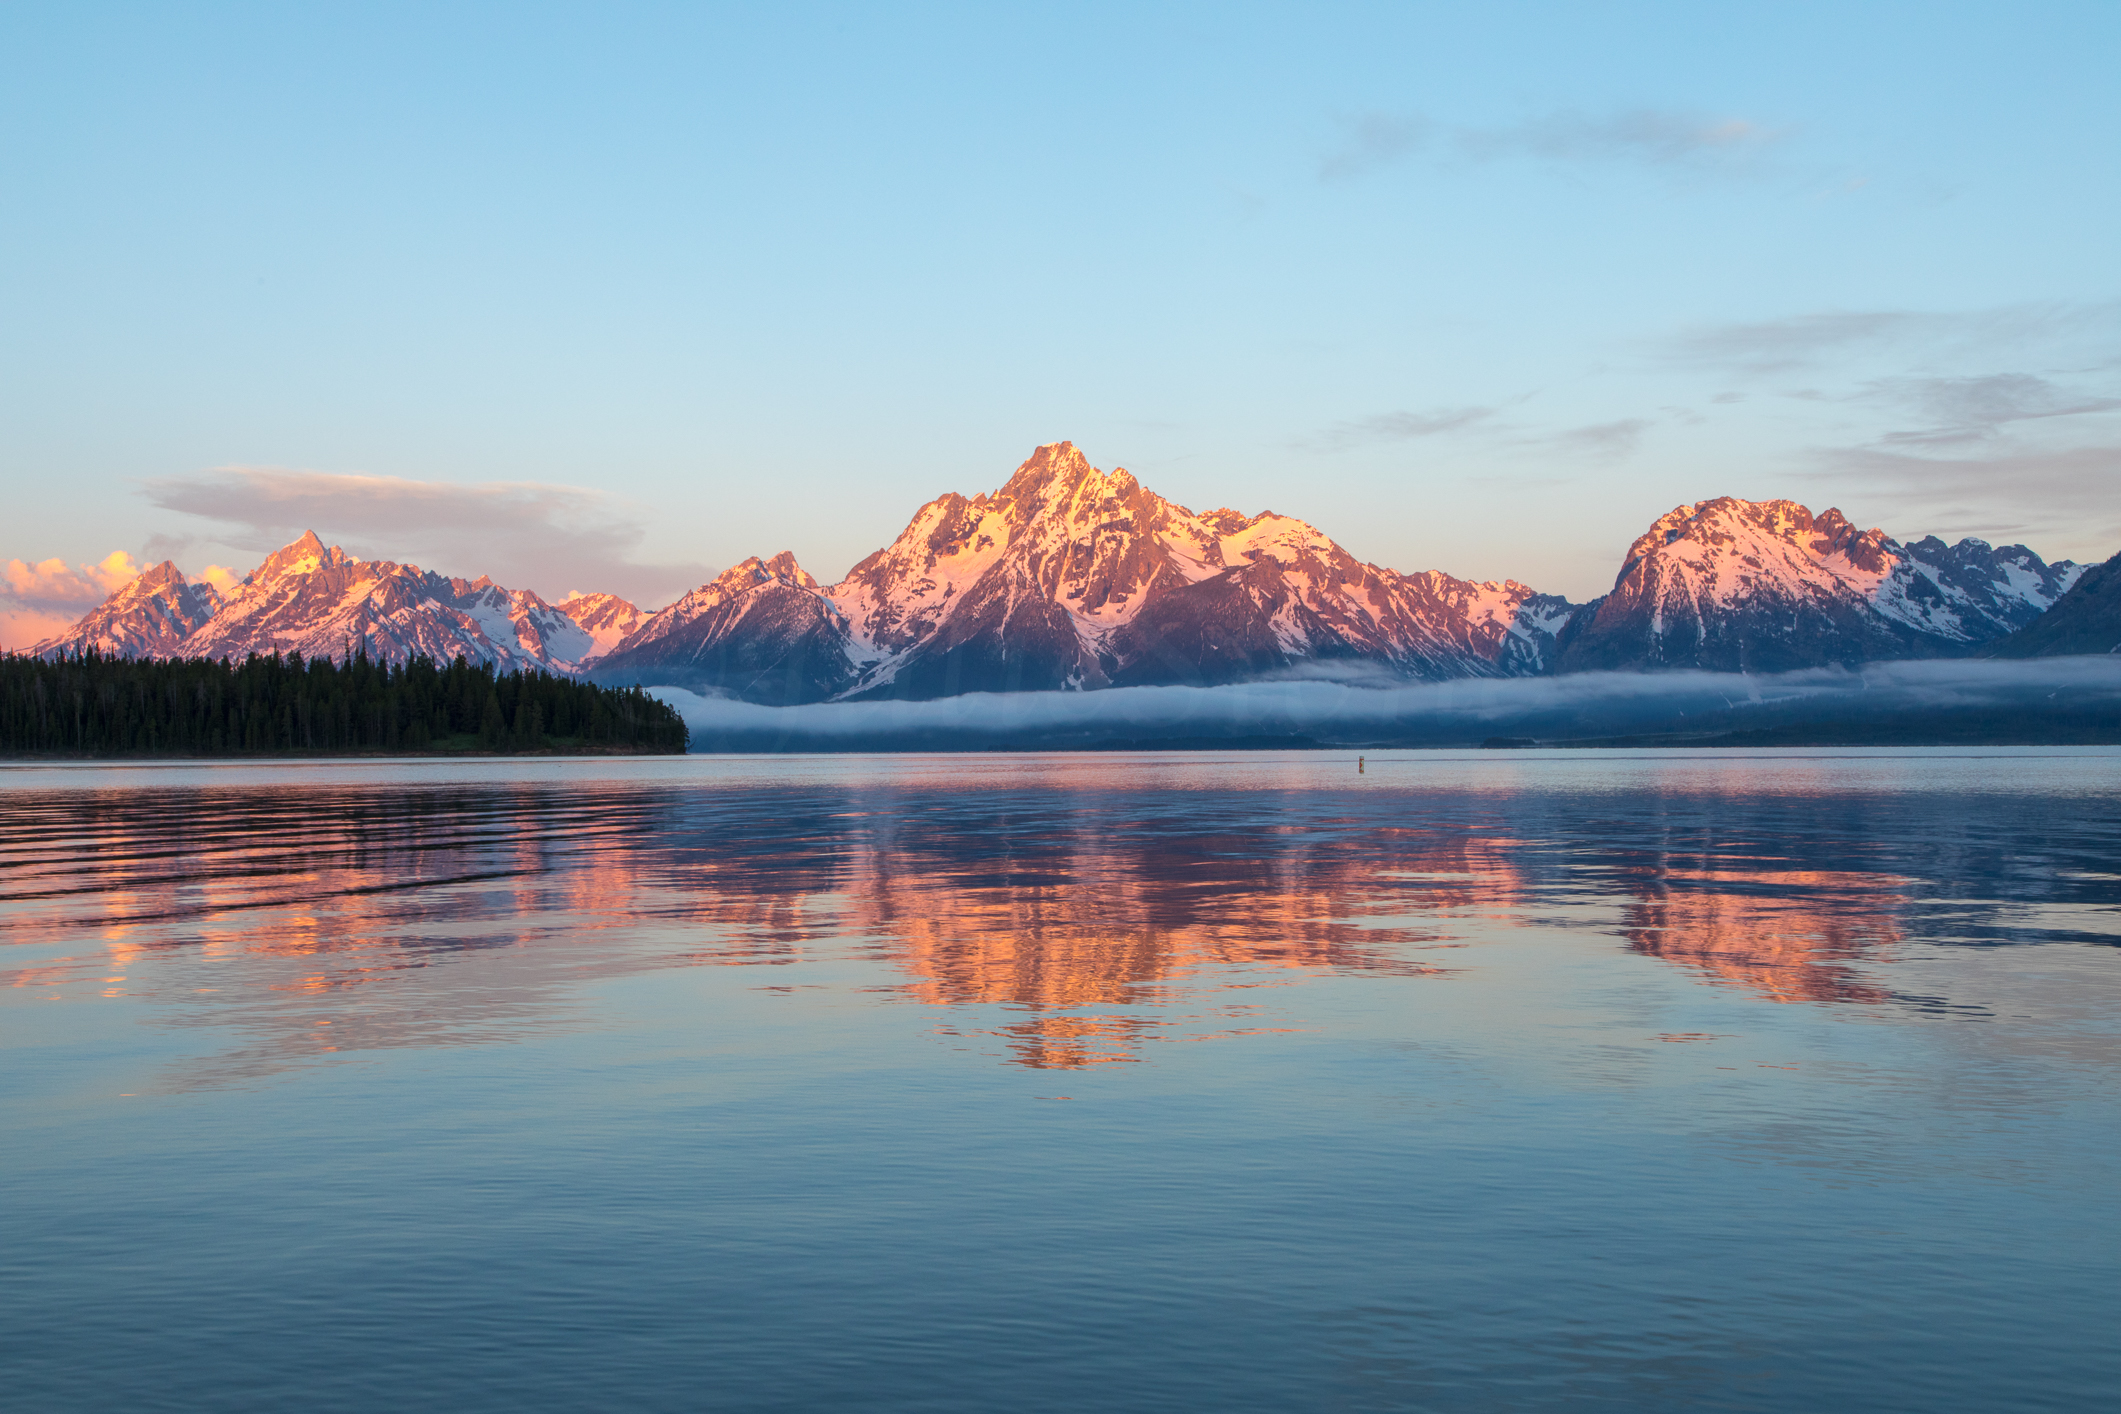 Colter Bay, Image # 3939